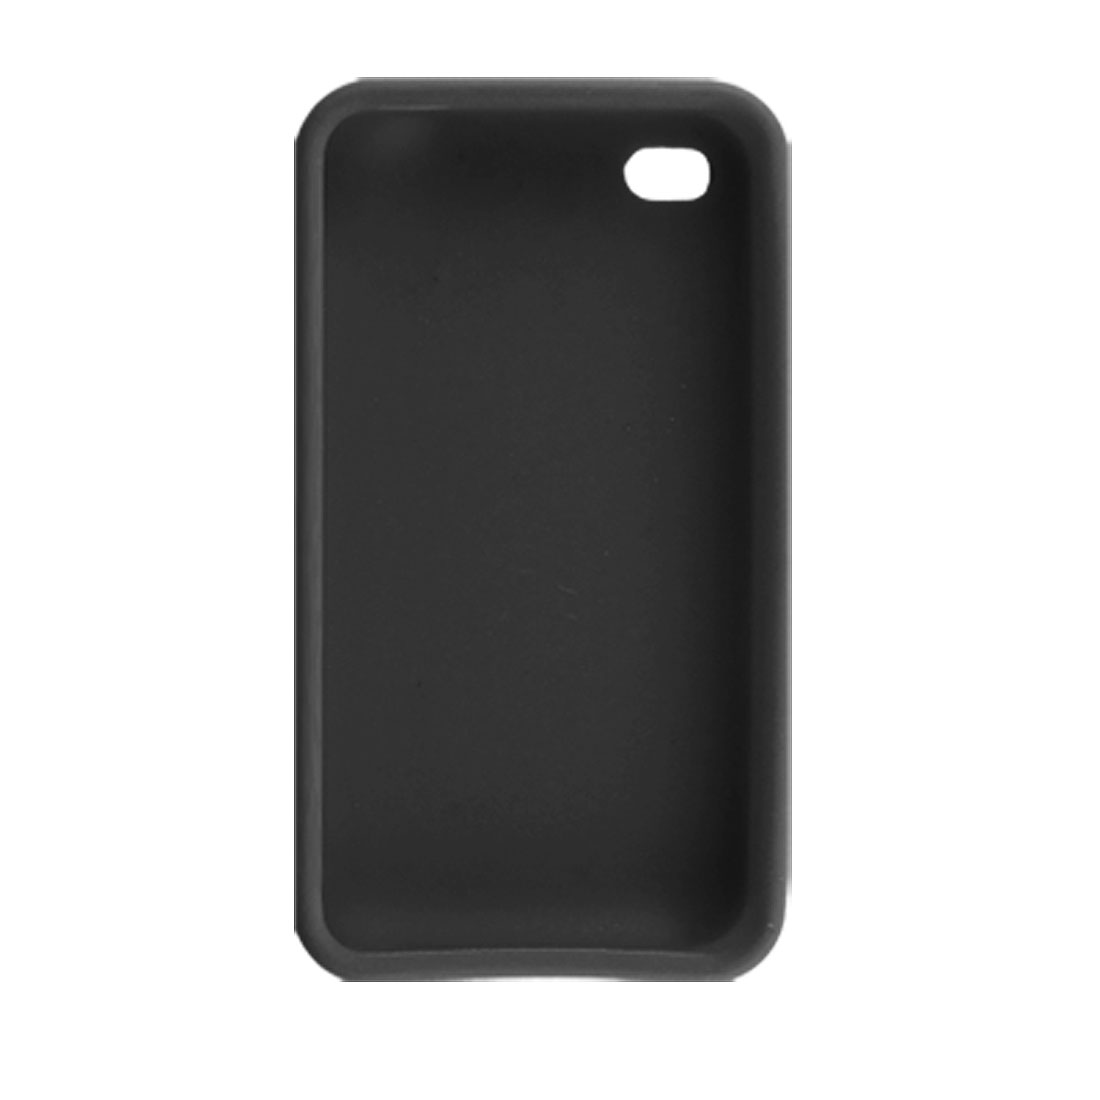 Black Silicone Skin Case Protector for Apple iPhone 4 4G